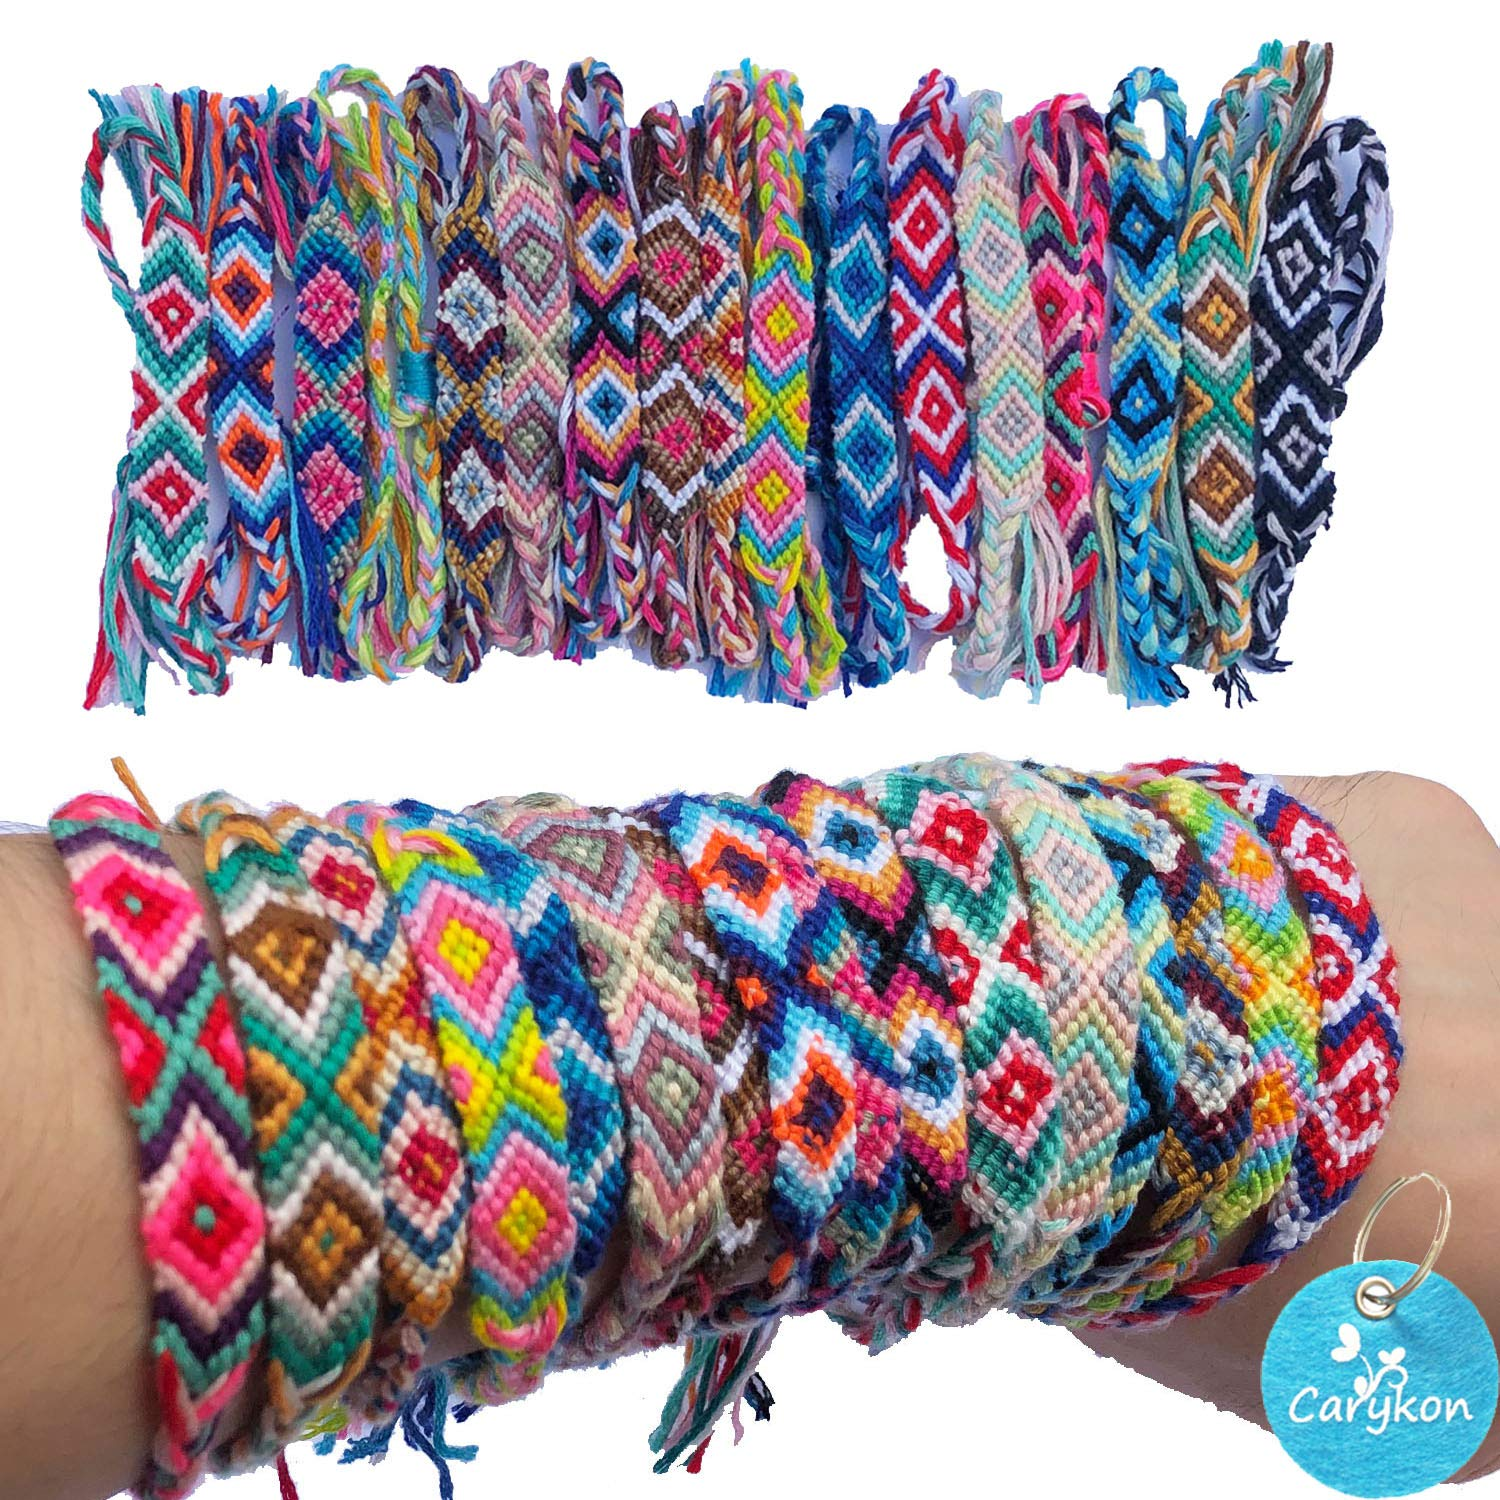 Carykon 12 PCS Nepal Woven Friendship Bracelets with a Sliding Knot Closure for Women Teens and Girls, Color May Vary by Carykon